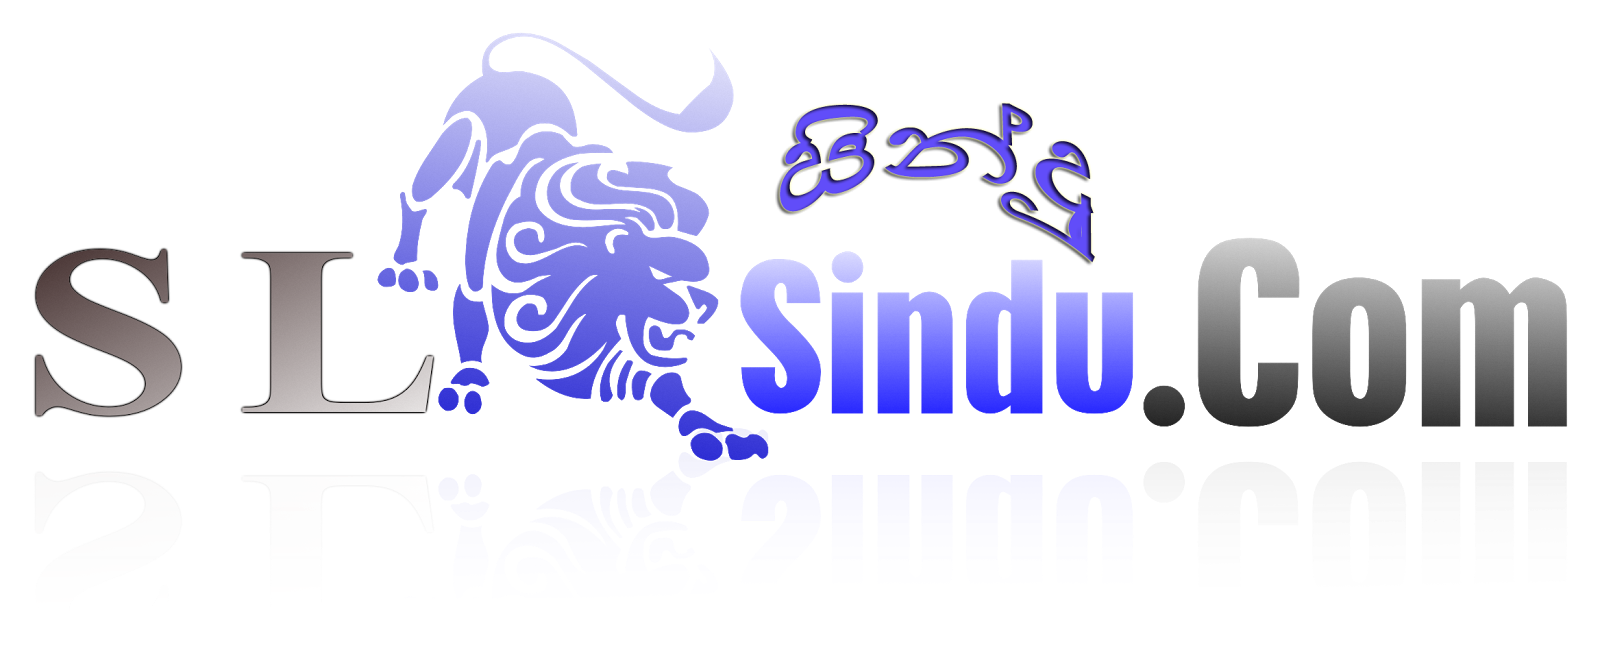 www.SLsindu.Com Best Downlaod Site